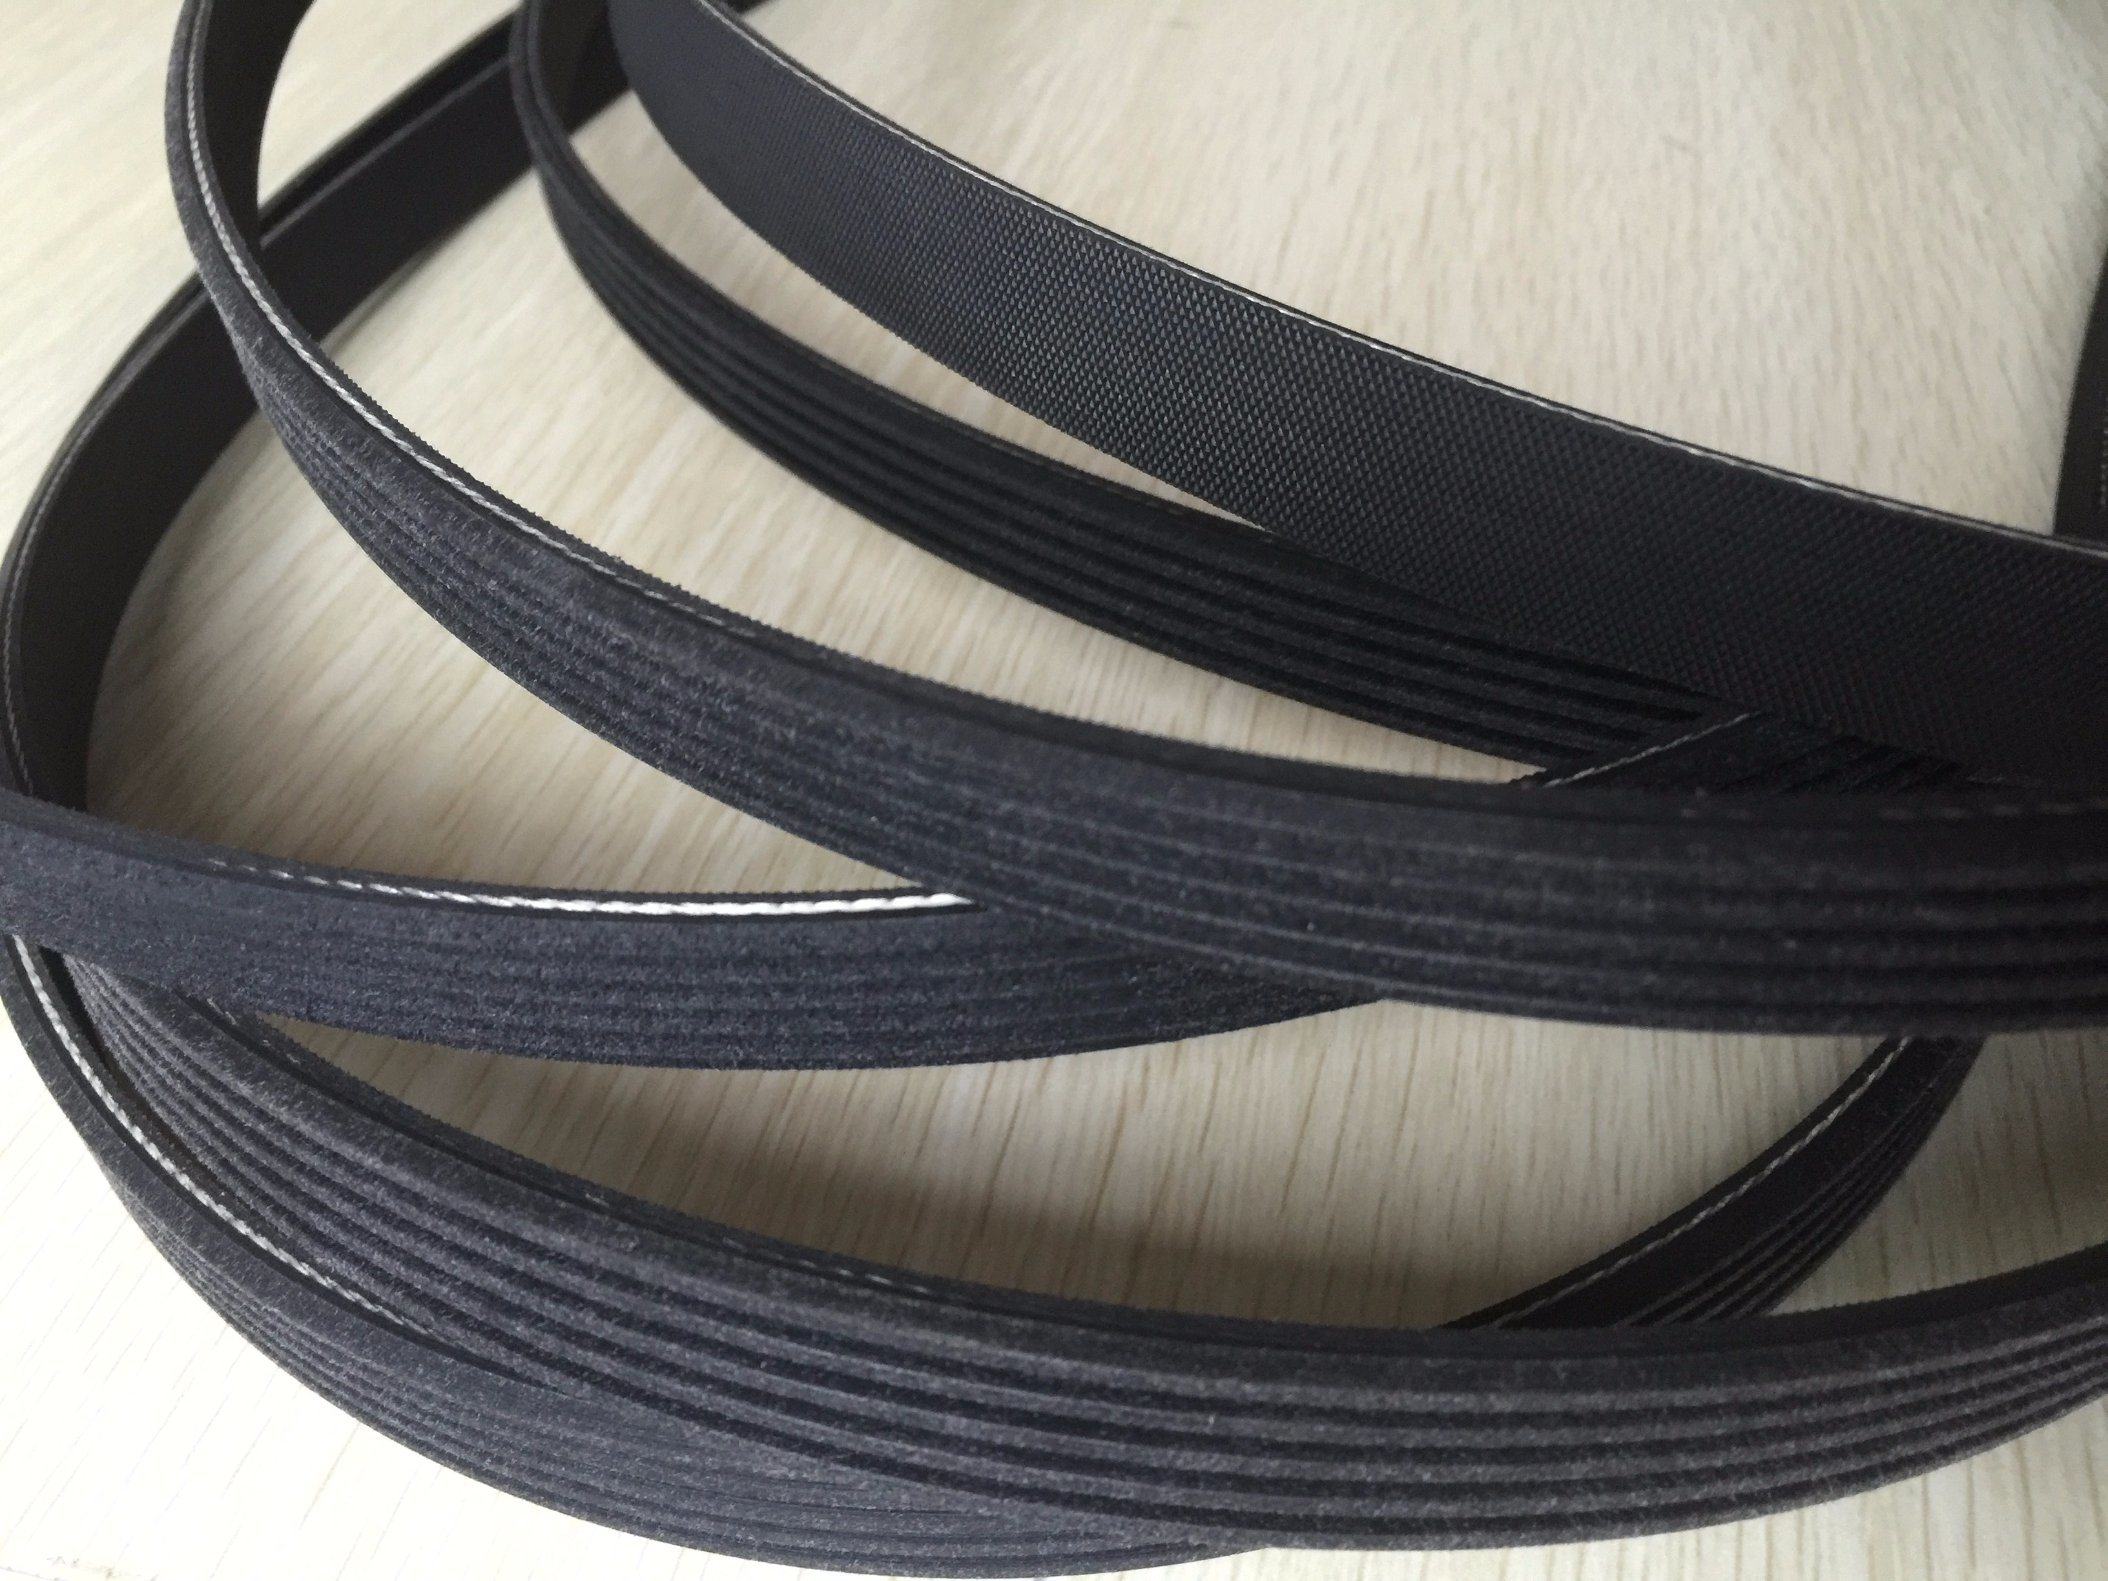 Automotive Pk Belt, Fan Belt, Ribbed Belts for Autos +Paz